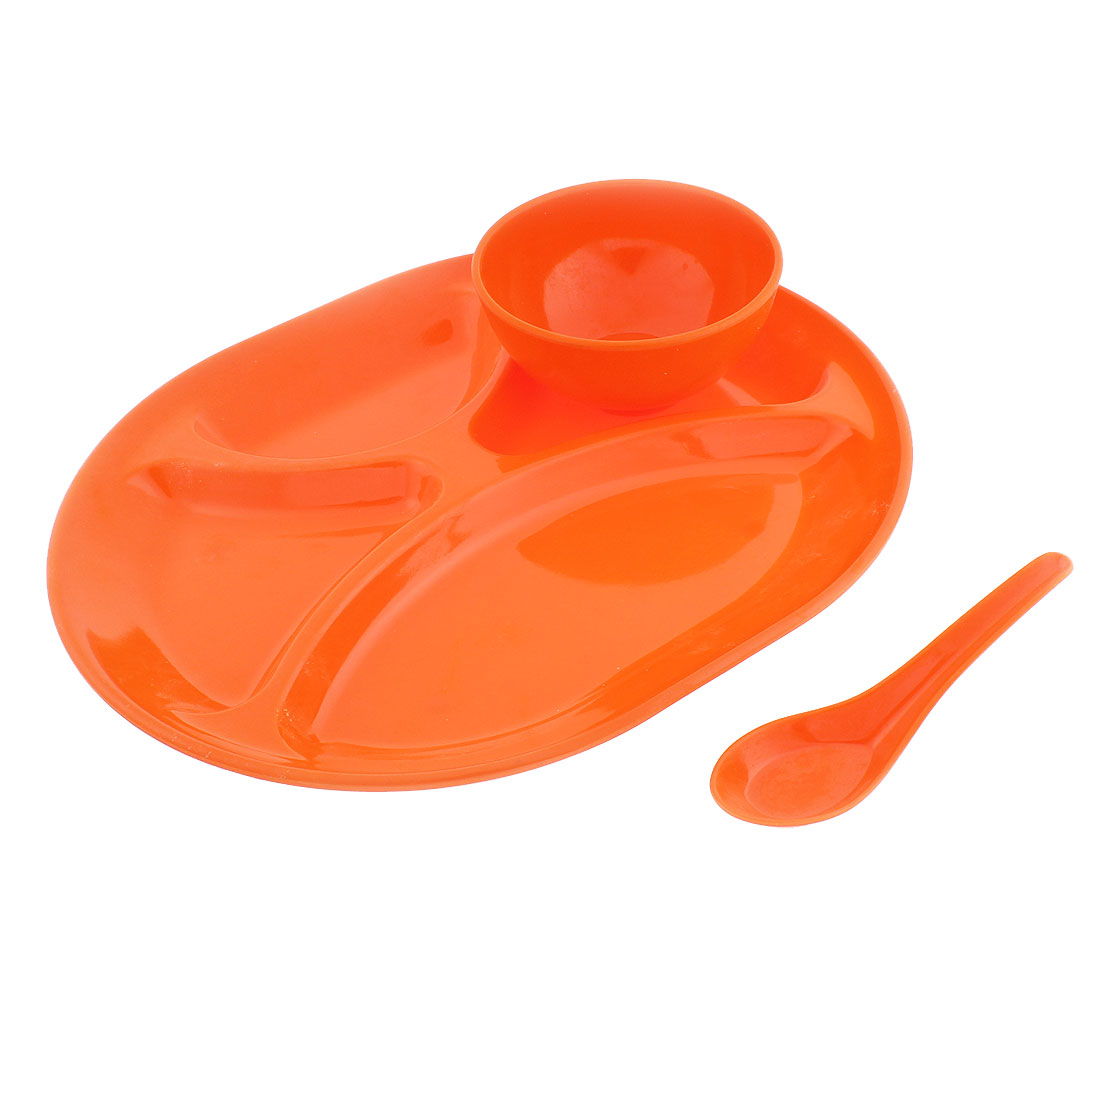 Restaurant Oval Shaped 4 Compartments Divided Plate Bowl Spoon Orangered 3 in 1